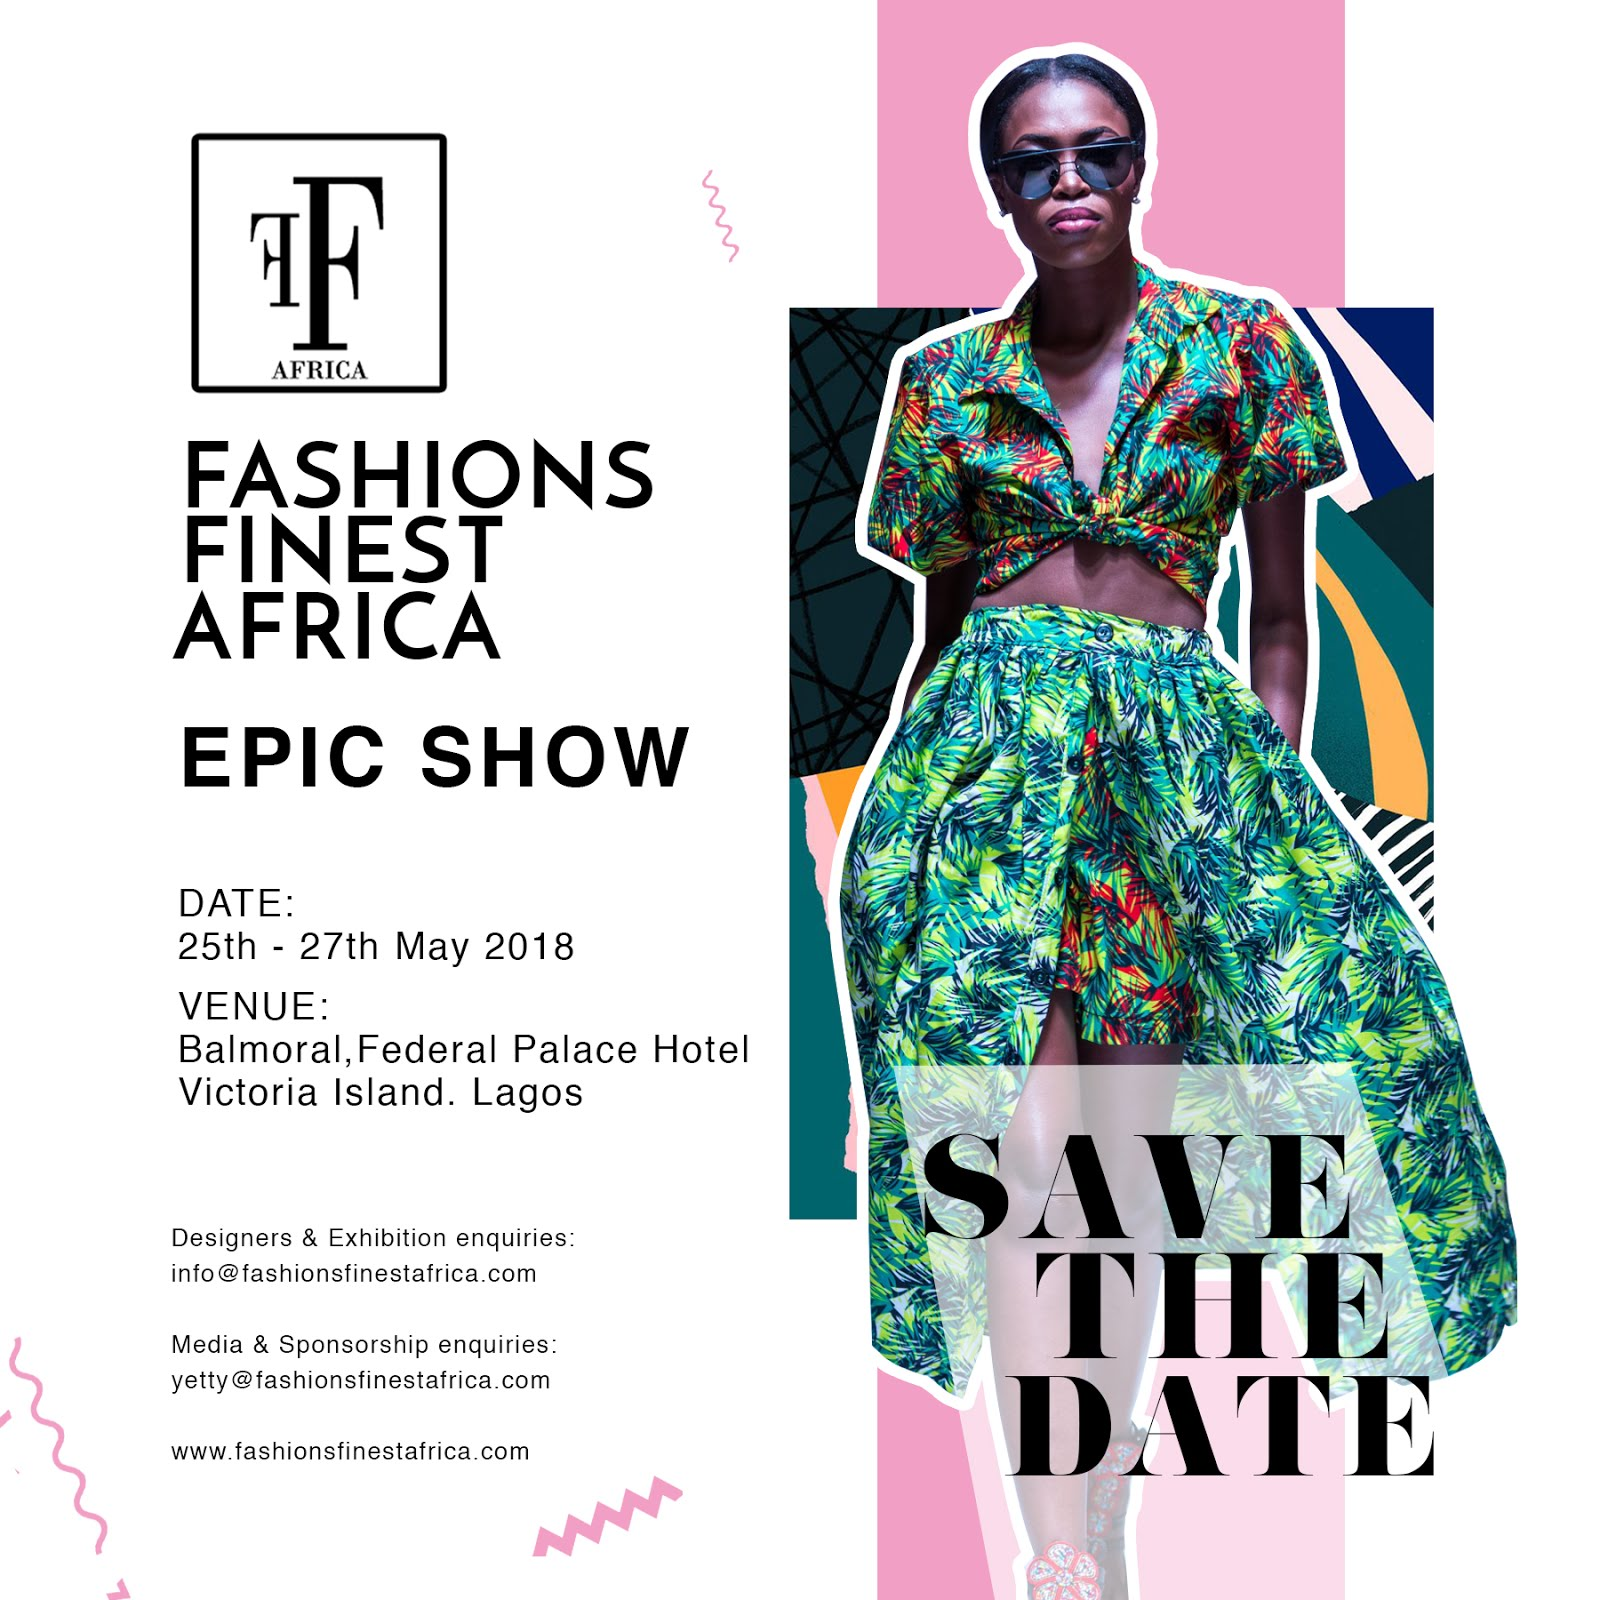 FASHION FINEST AFRICA EPIC SHOW